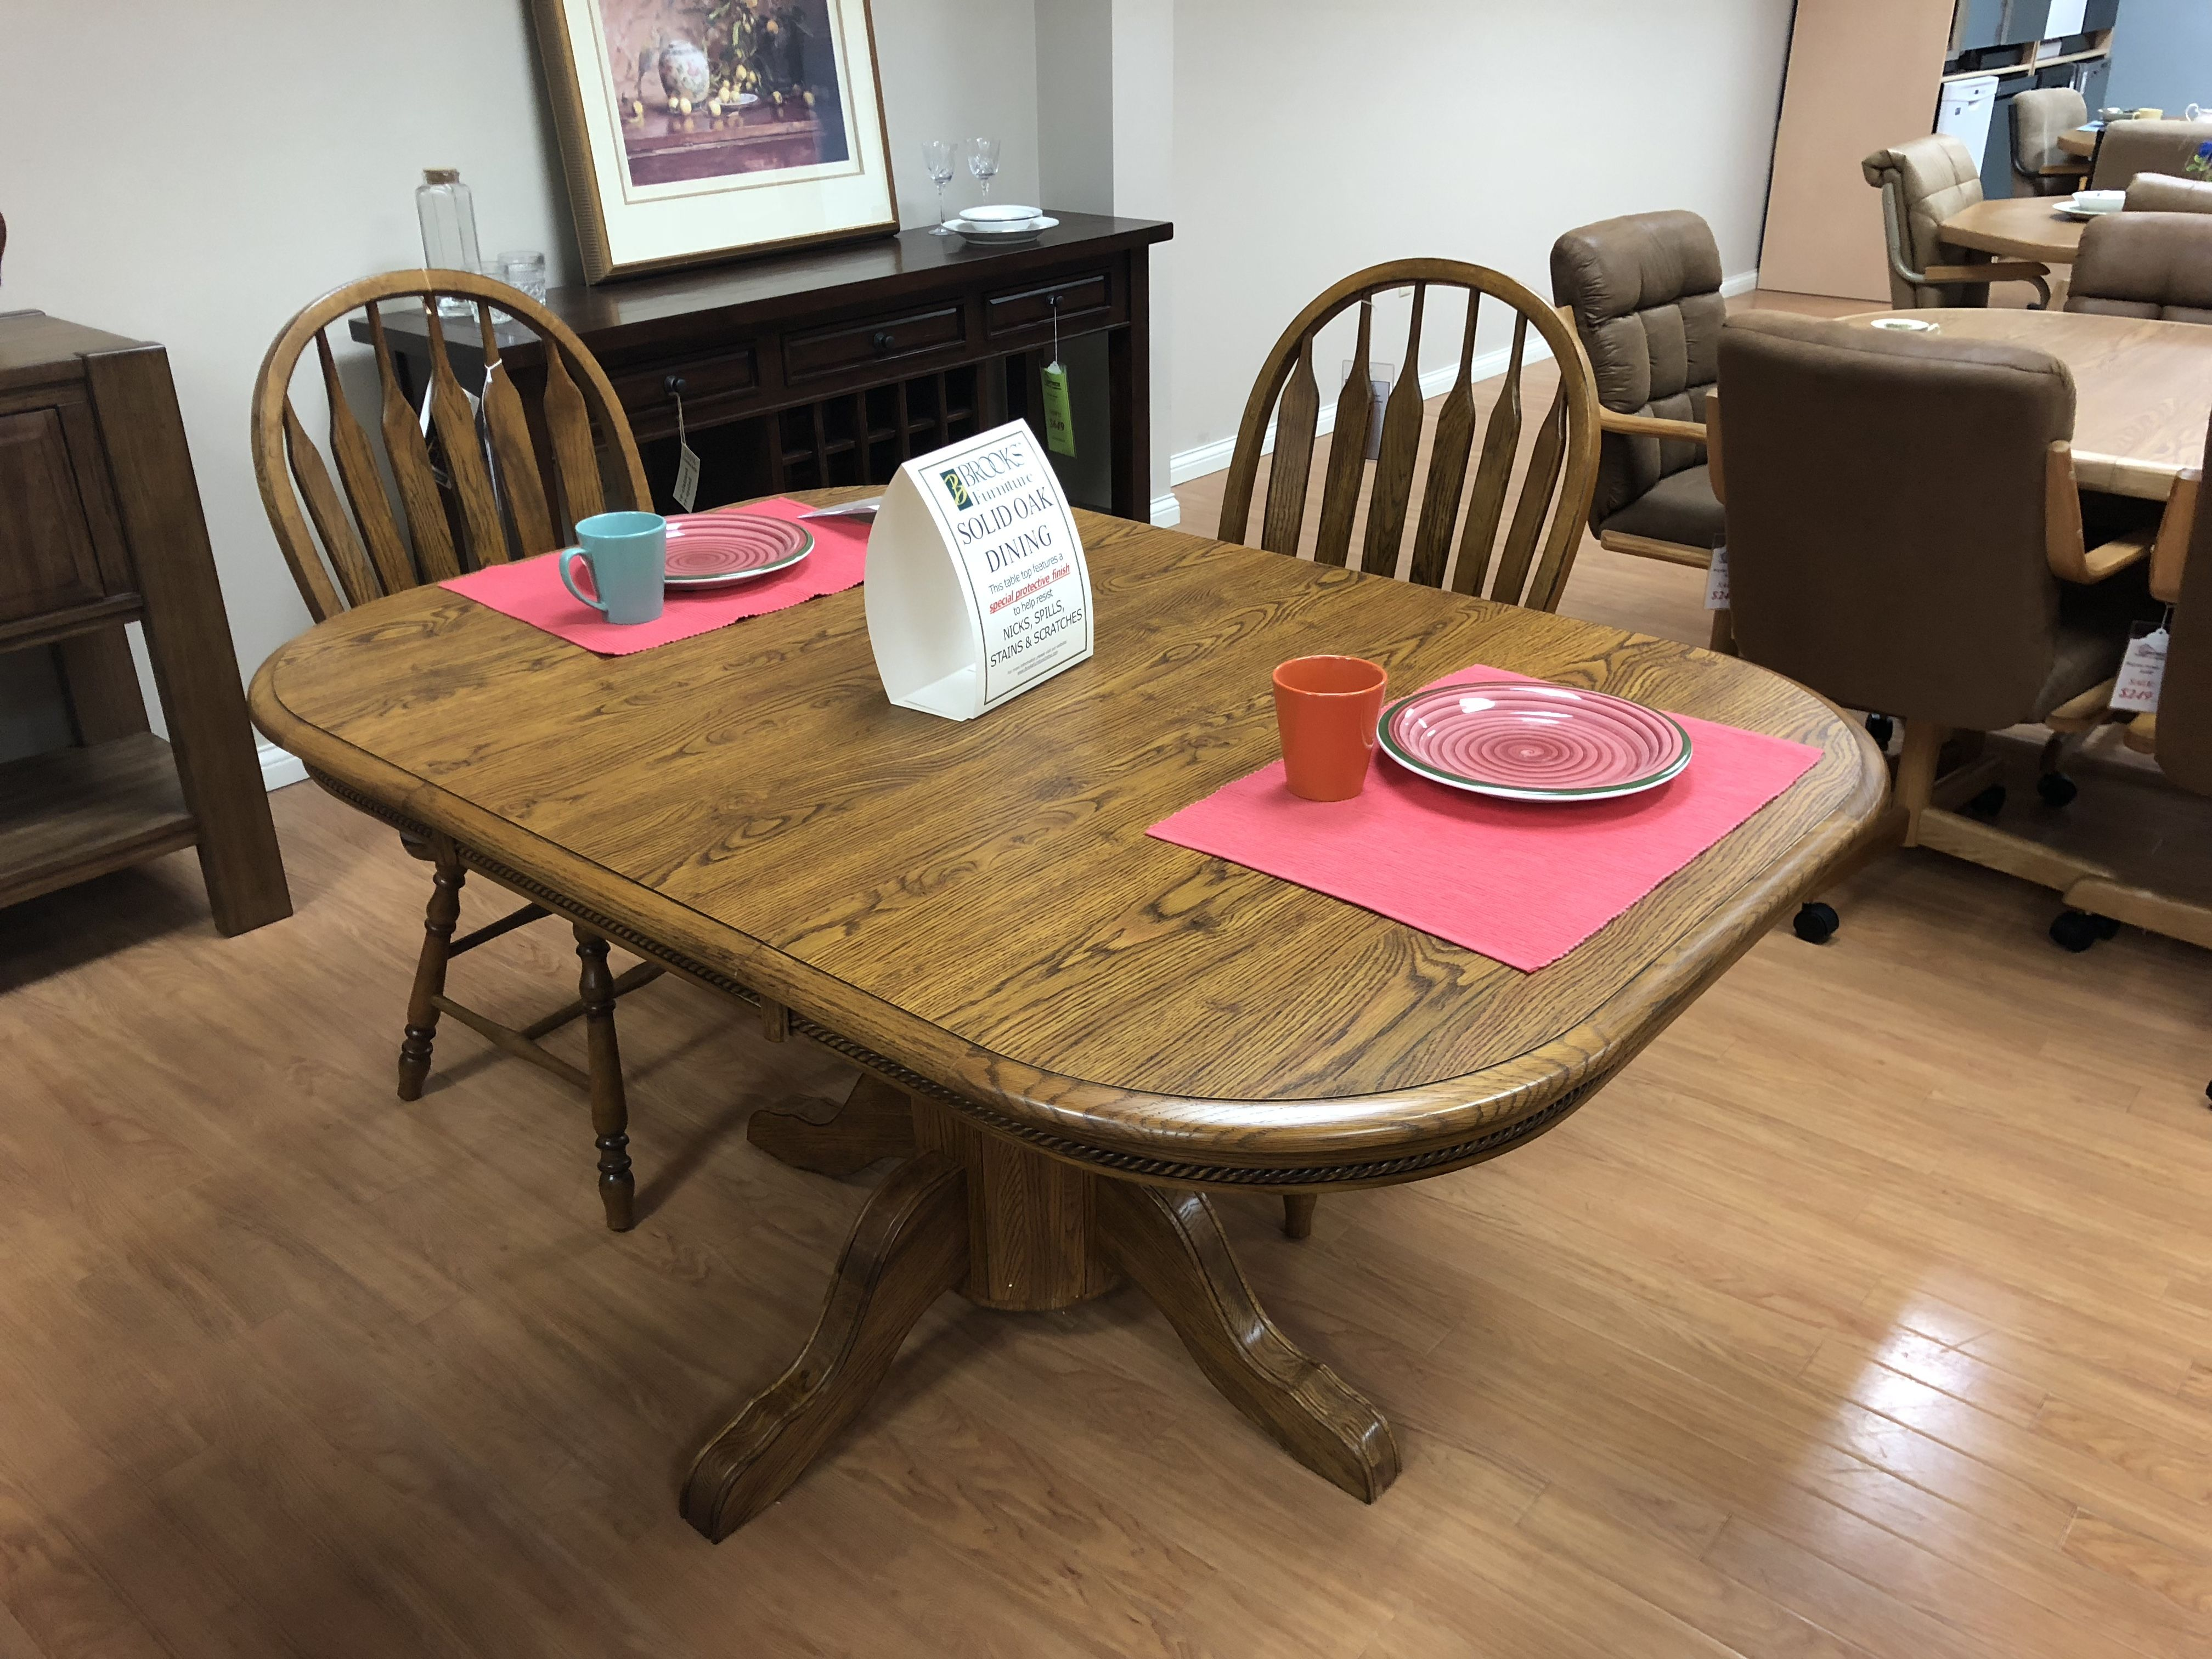 You Dont Have To Sit Around The Same Old Table This Thanksgiving We Many Dining Sets In Stock And Ready For Delivery Come Today Pick Out